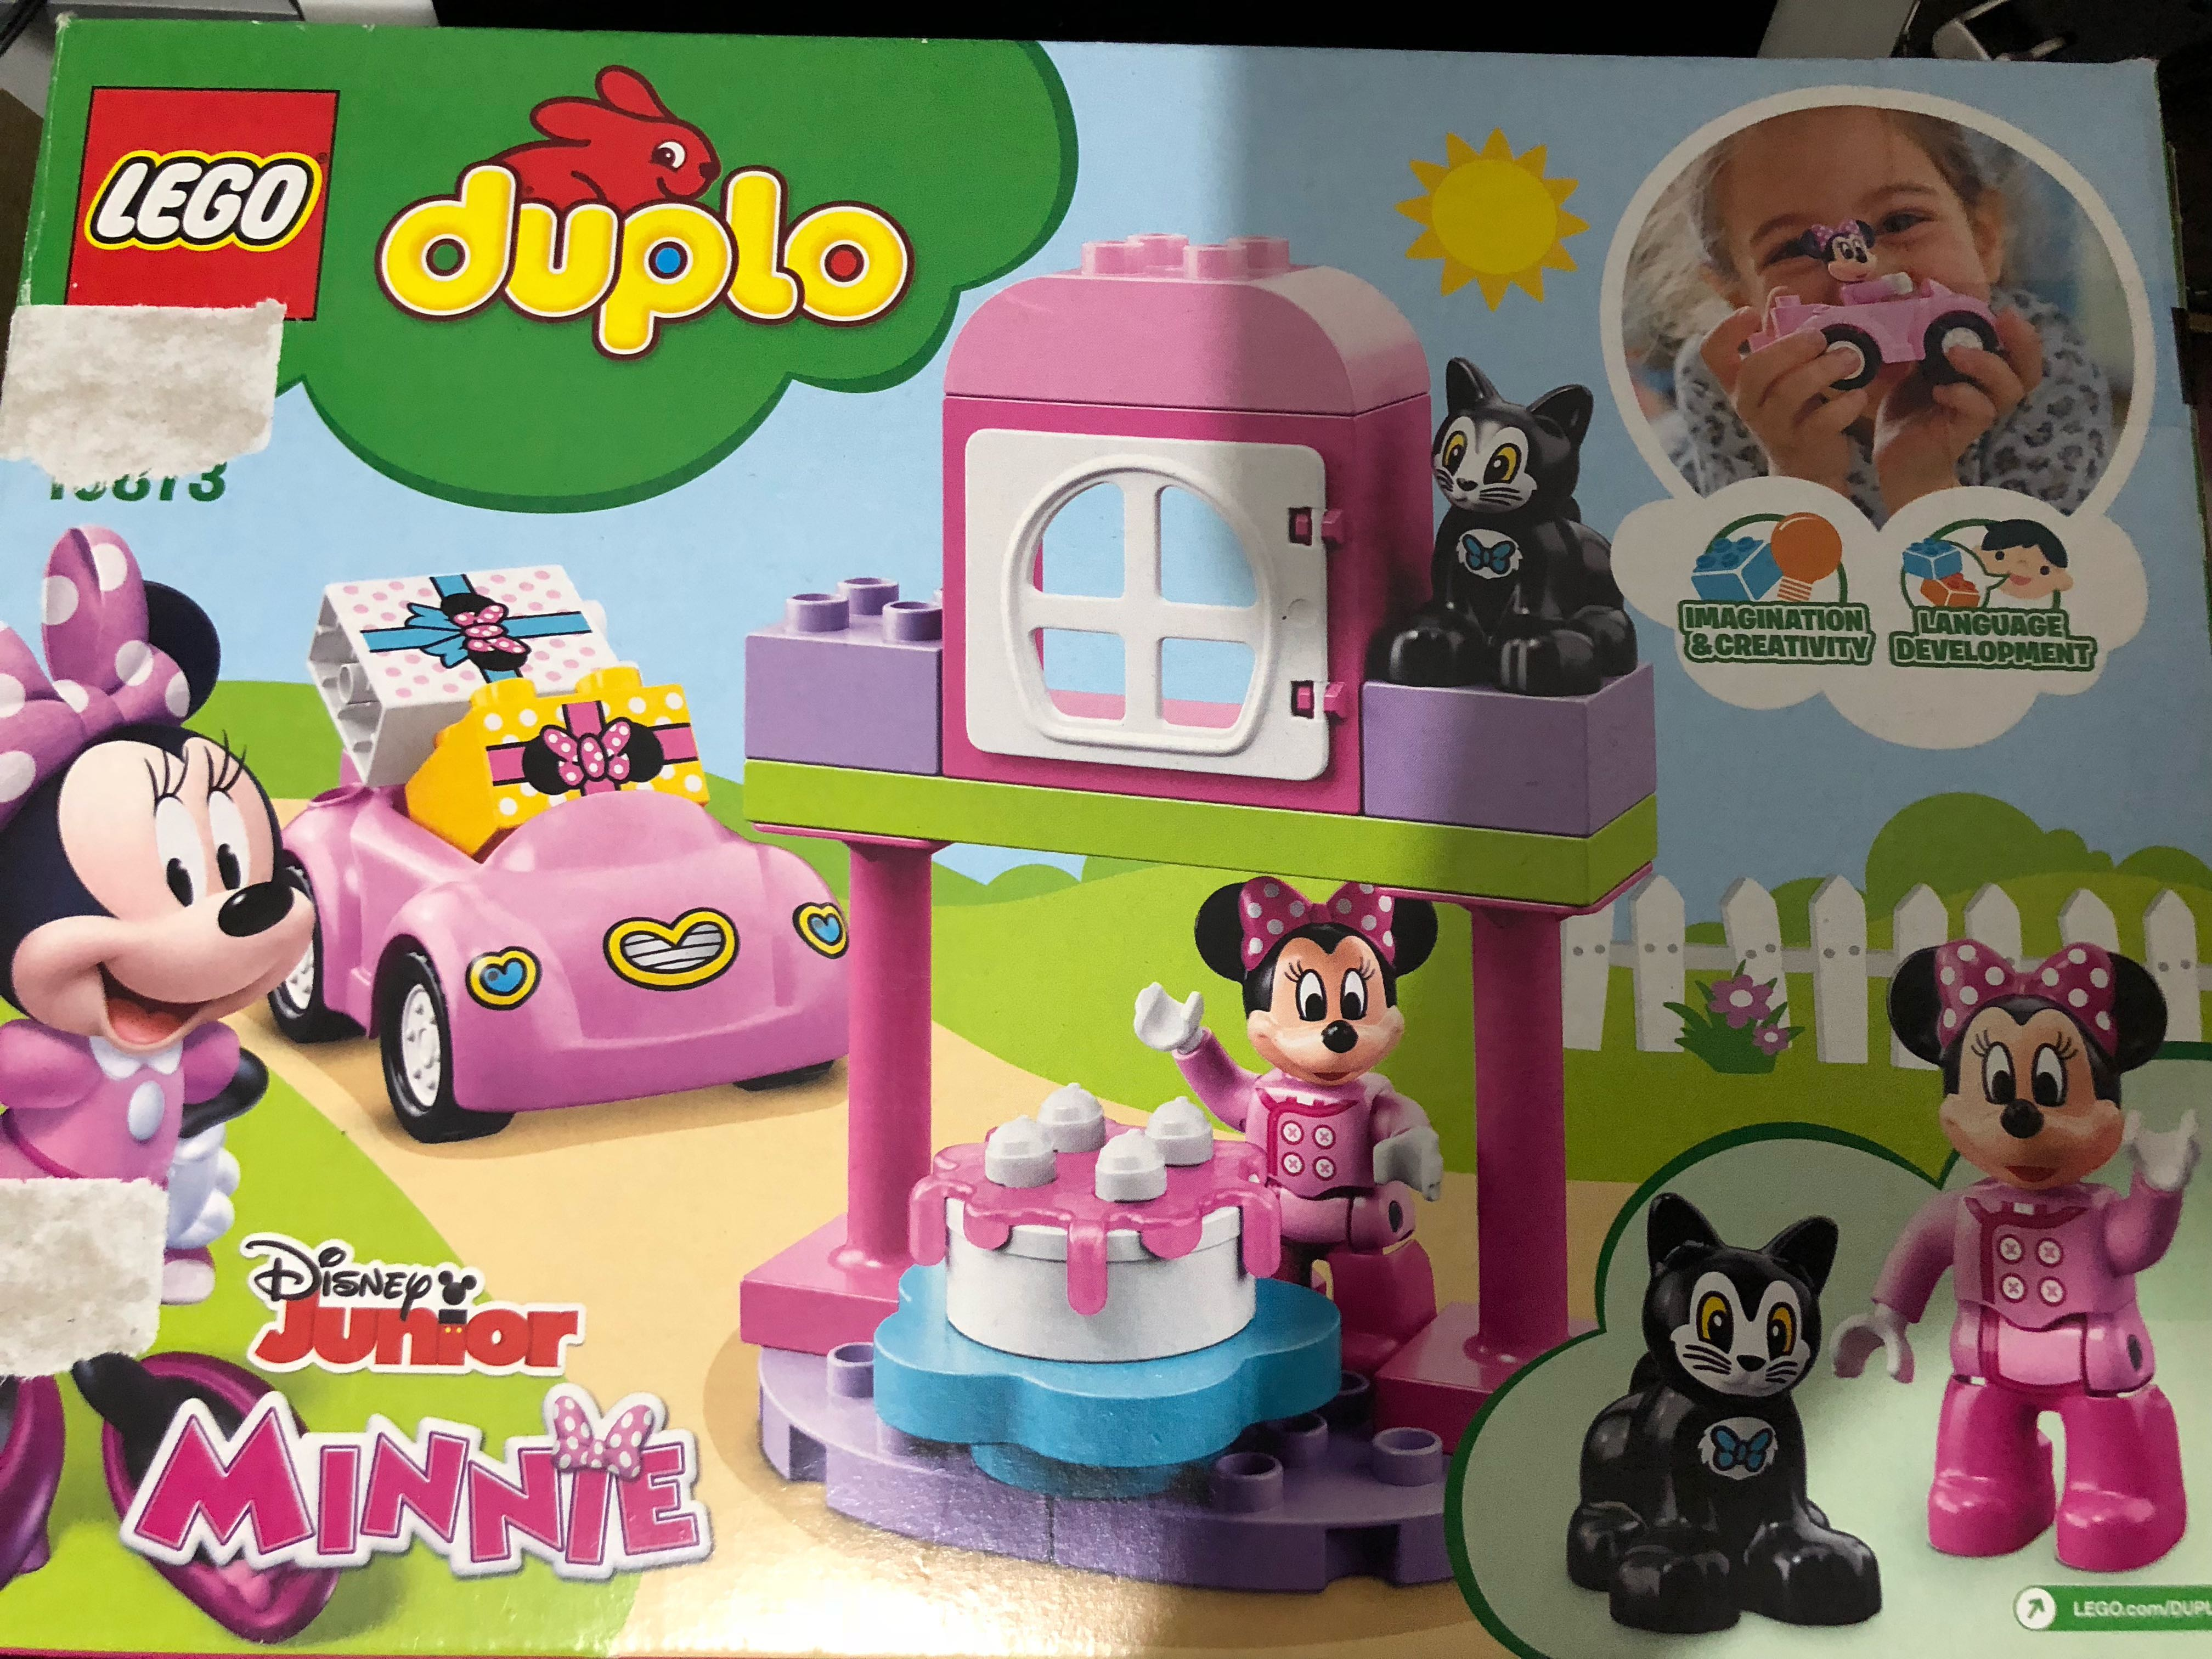 Authentic Lego Duplo Minnie Mouse Birthday Party Toys Games